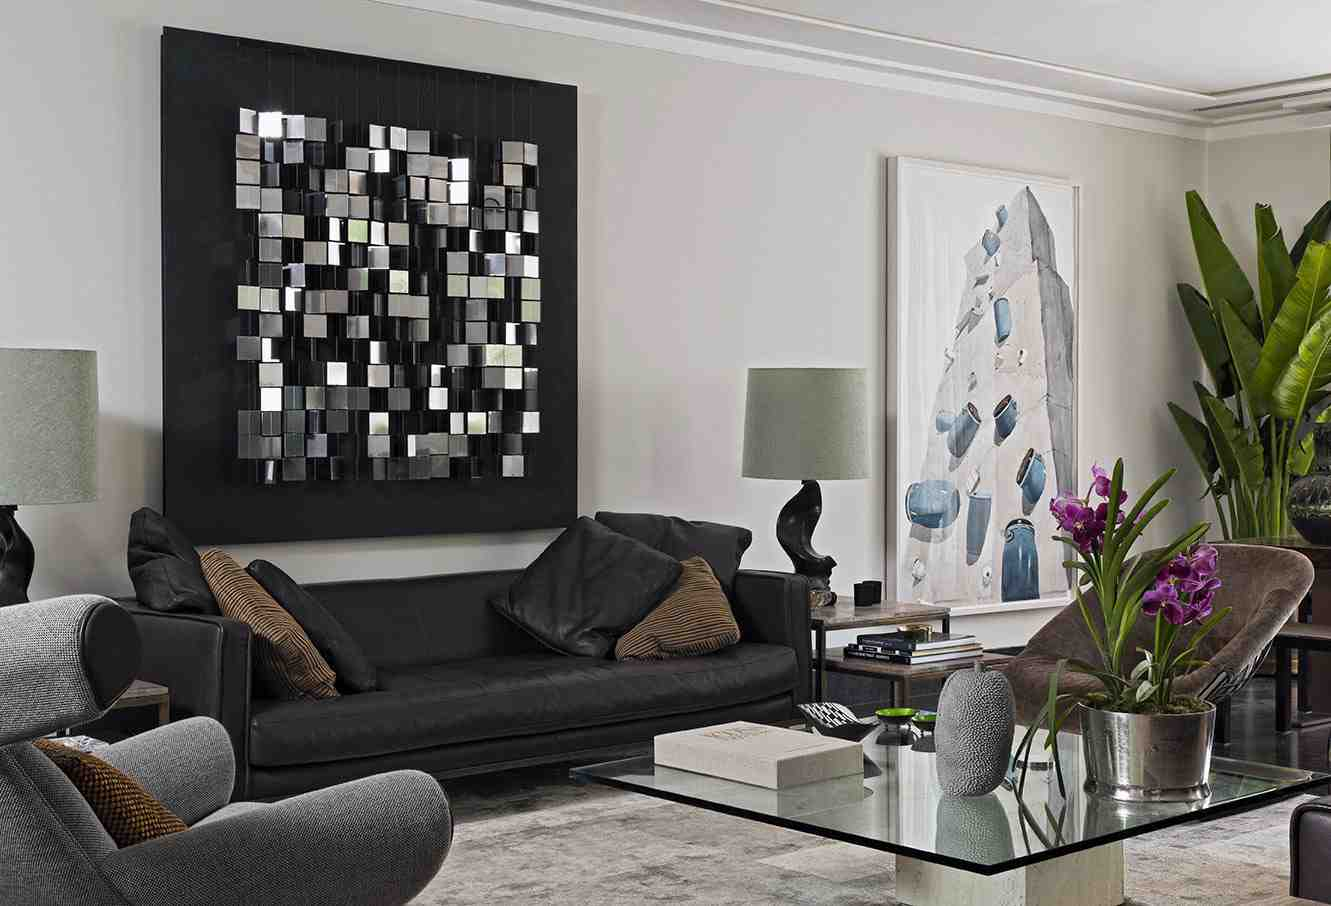 Living room wall decor 5 options decor ideasdecor ideas for Living room wall decor